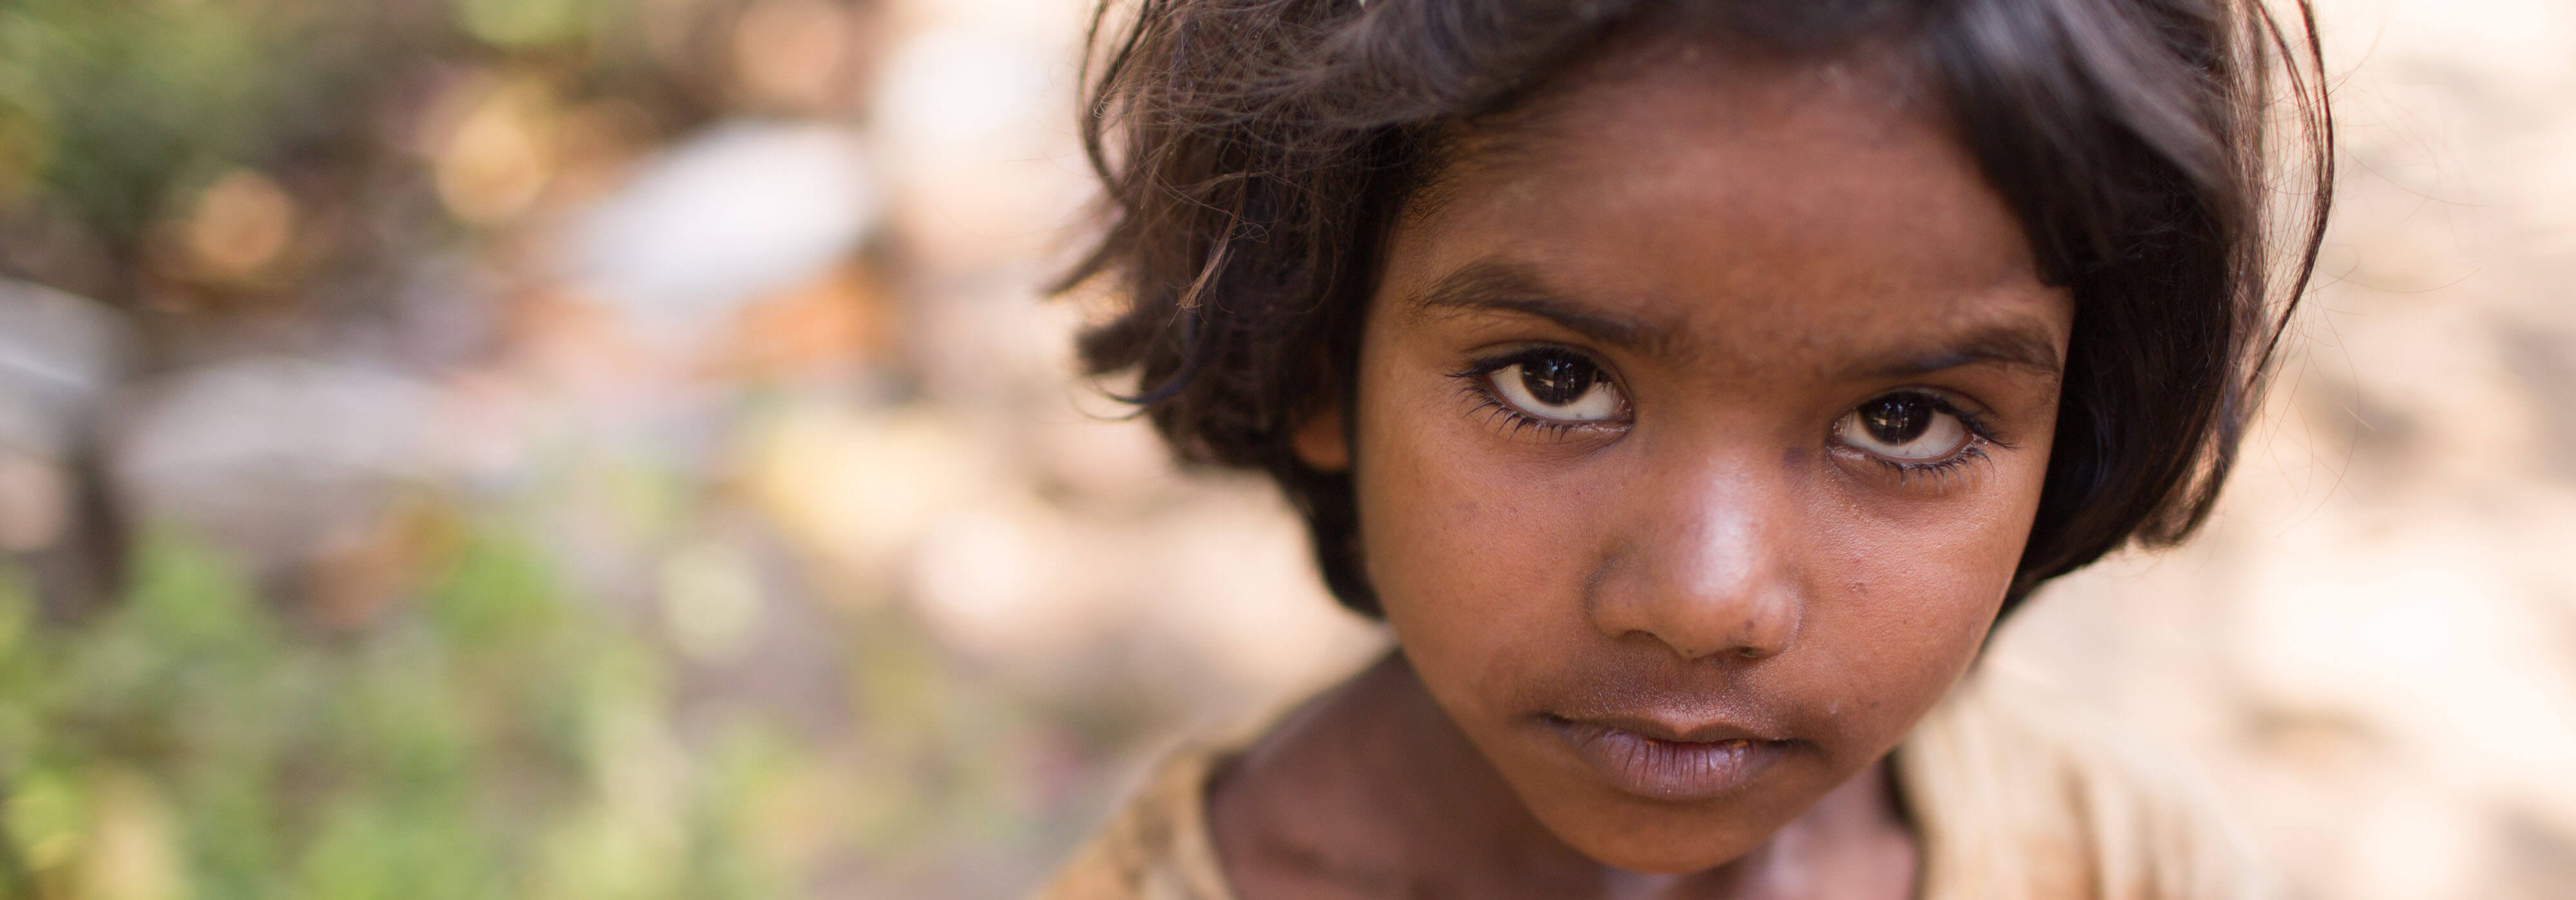 humantrafficking3.jpg